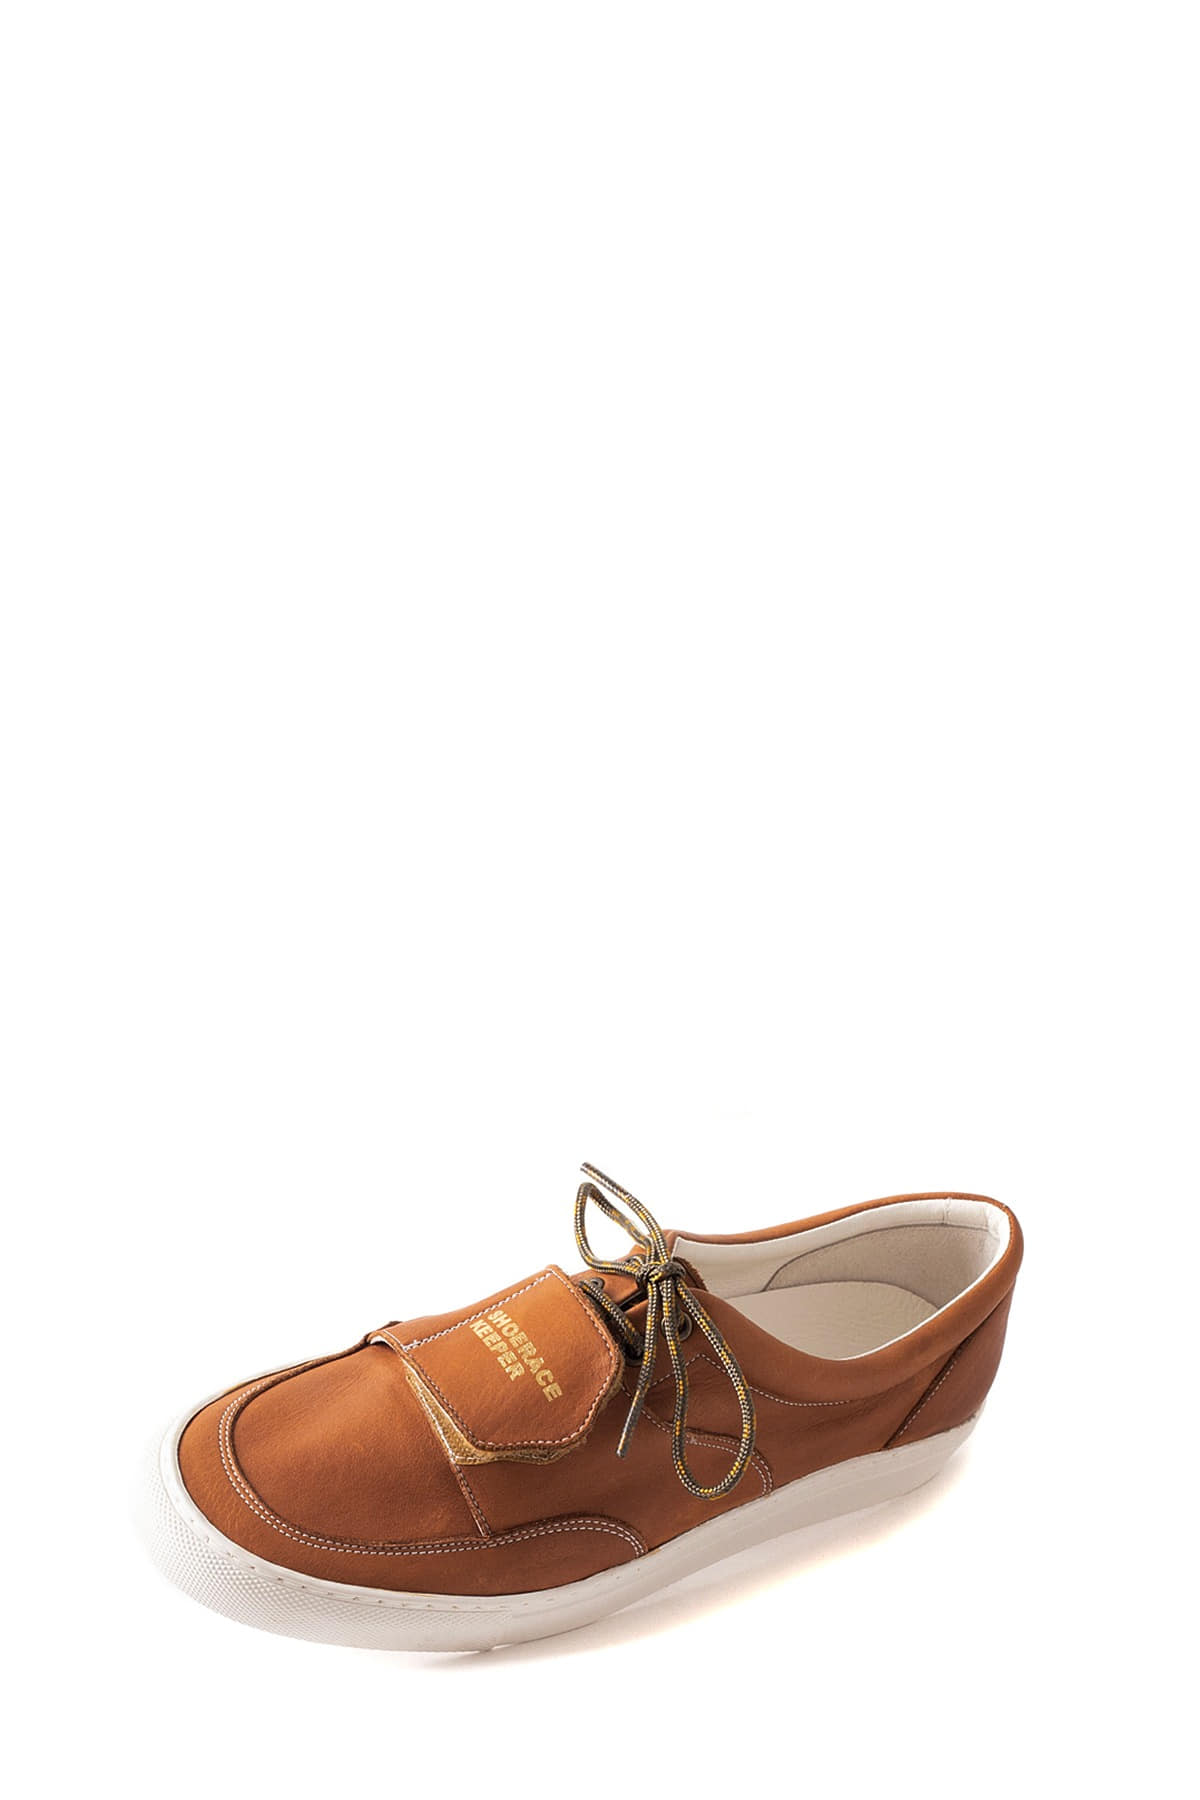 kolor / BEACON : A03532 Shoes (Brown)